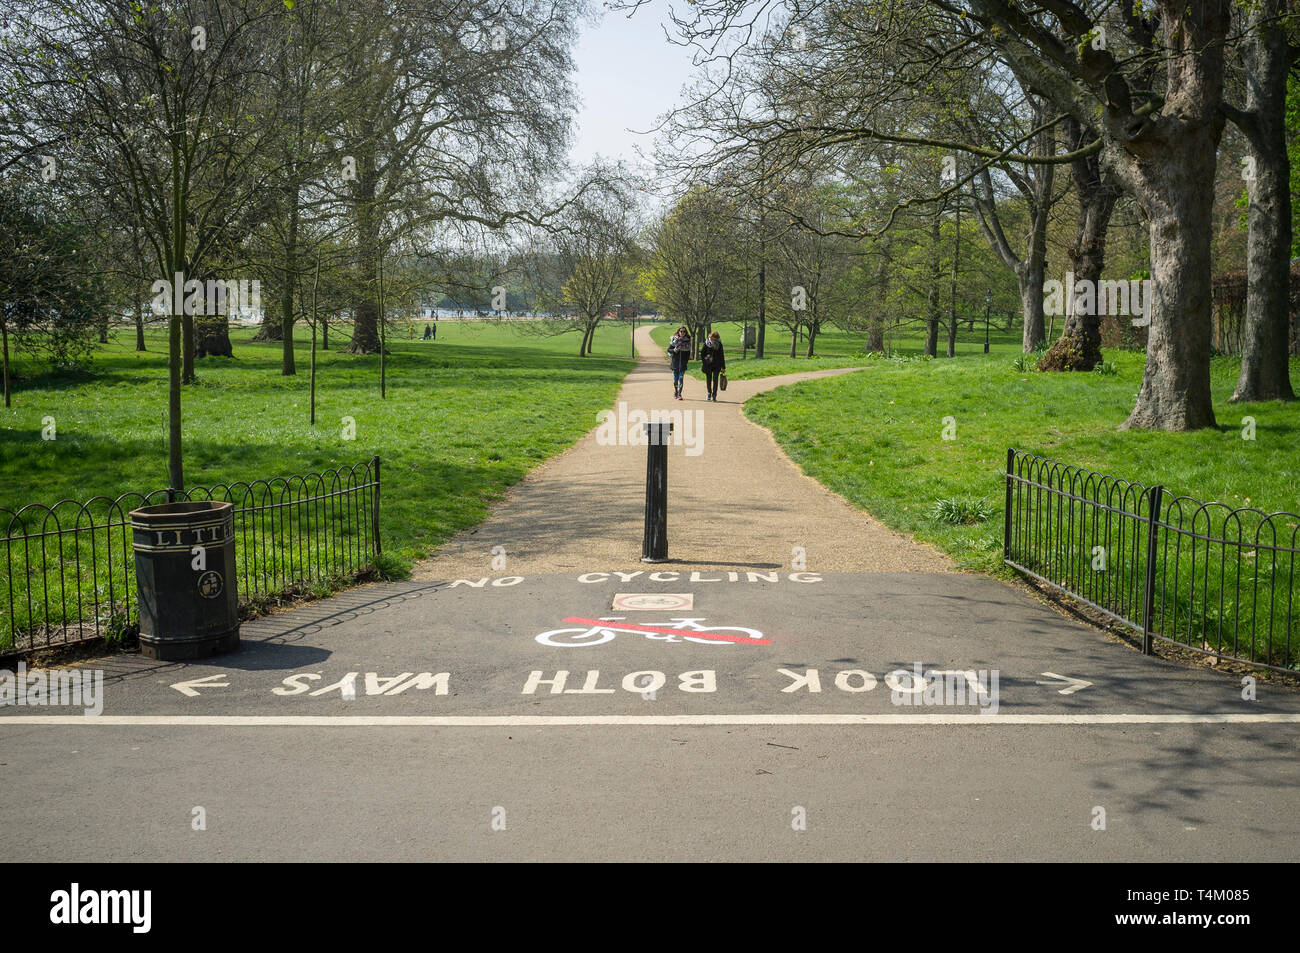 'Look both ways' 'No cycling' signs on the path in Hyde Park, London - Stock Image